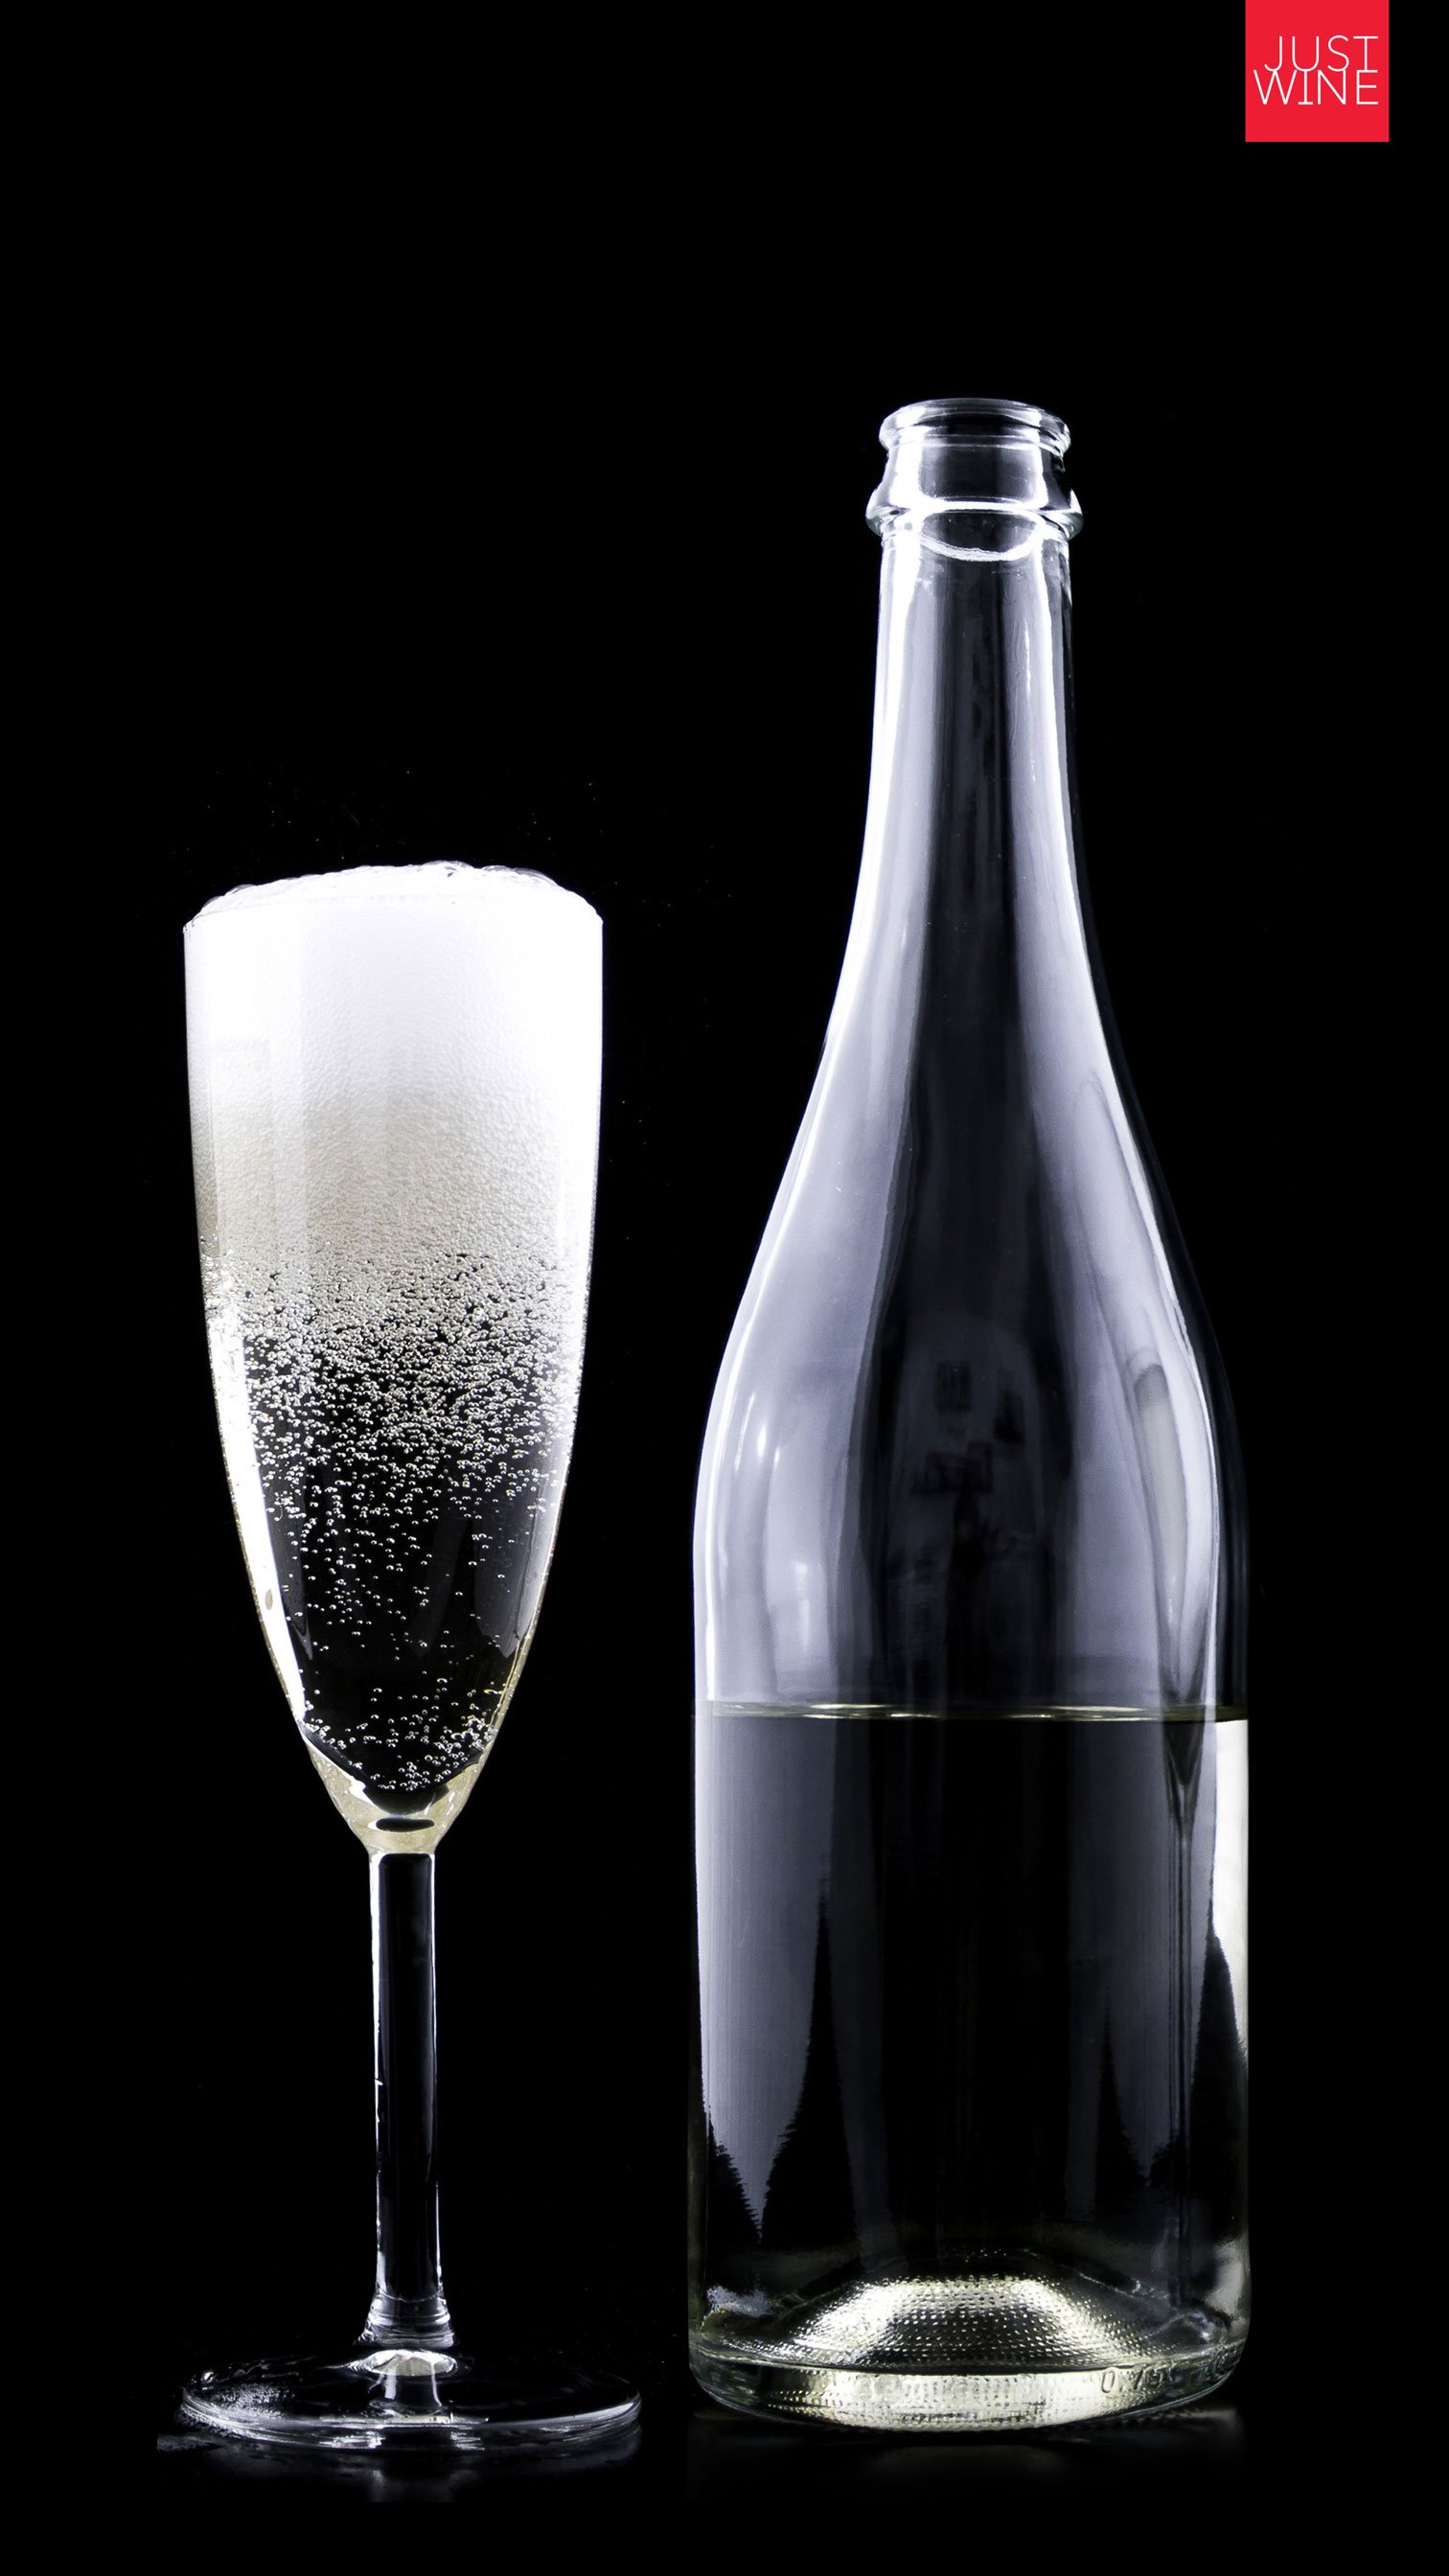 just-wine-mobile-wallpaper-champagne-background